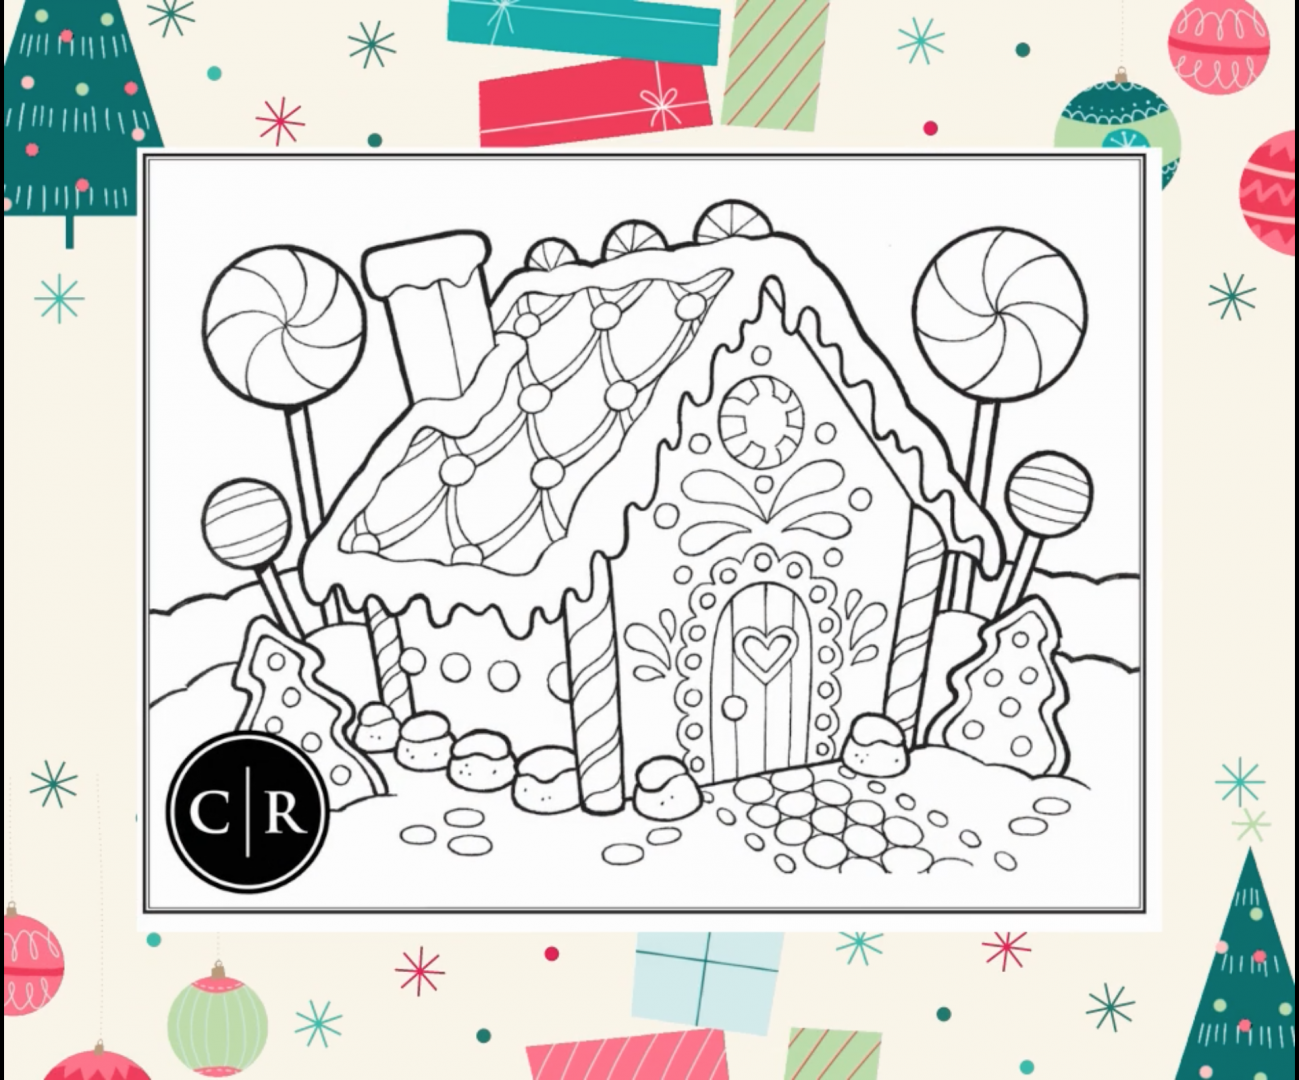 Christmas 2020 Colouring Contest!